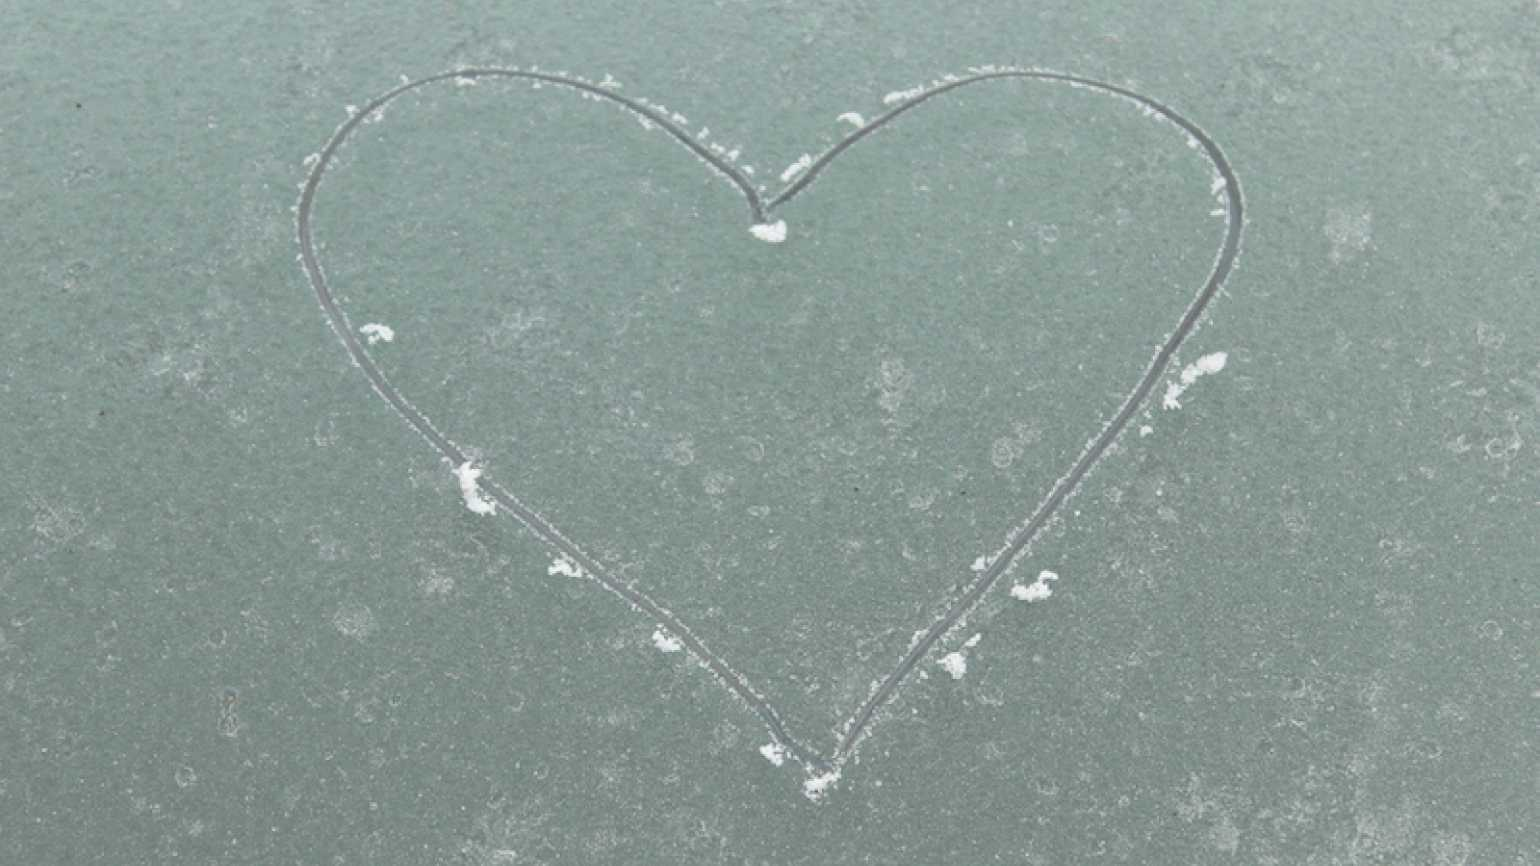 A heart carved in the ice...